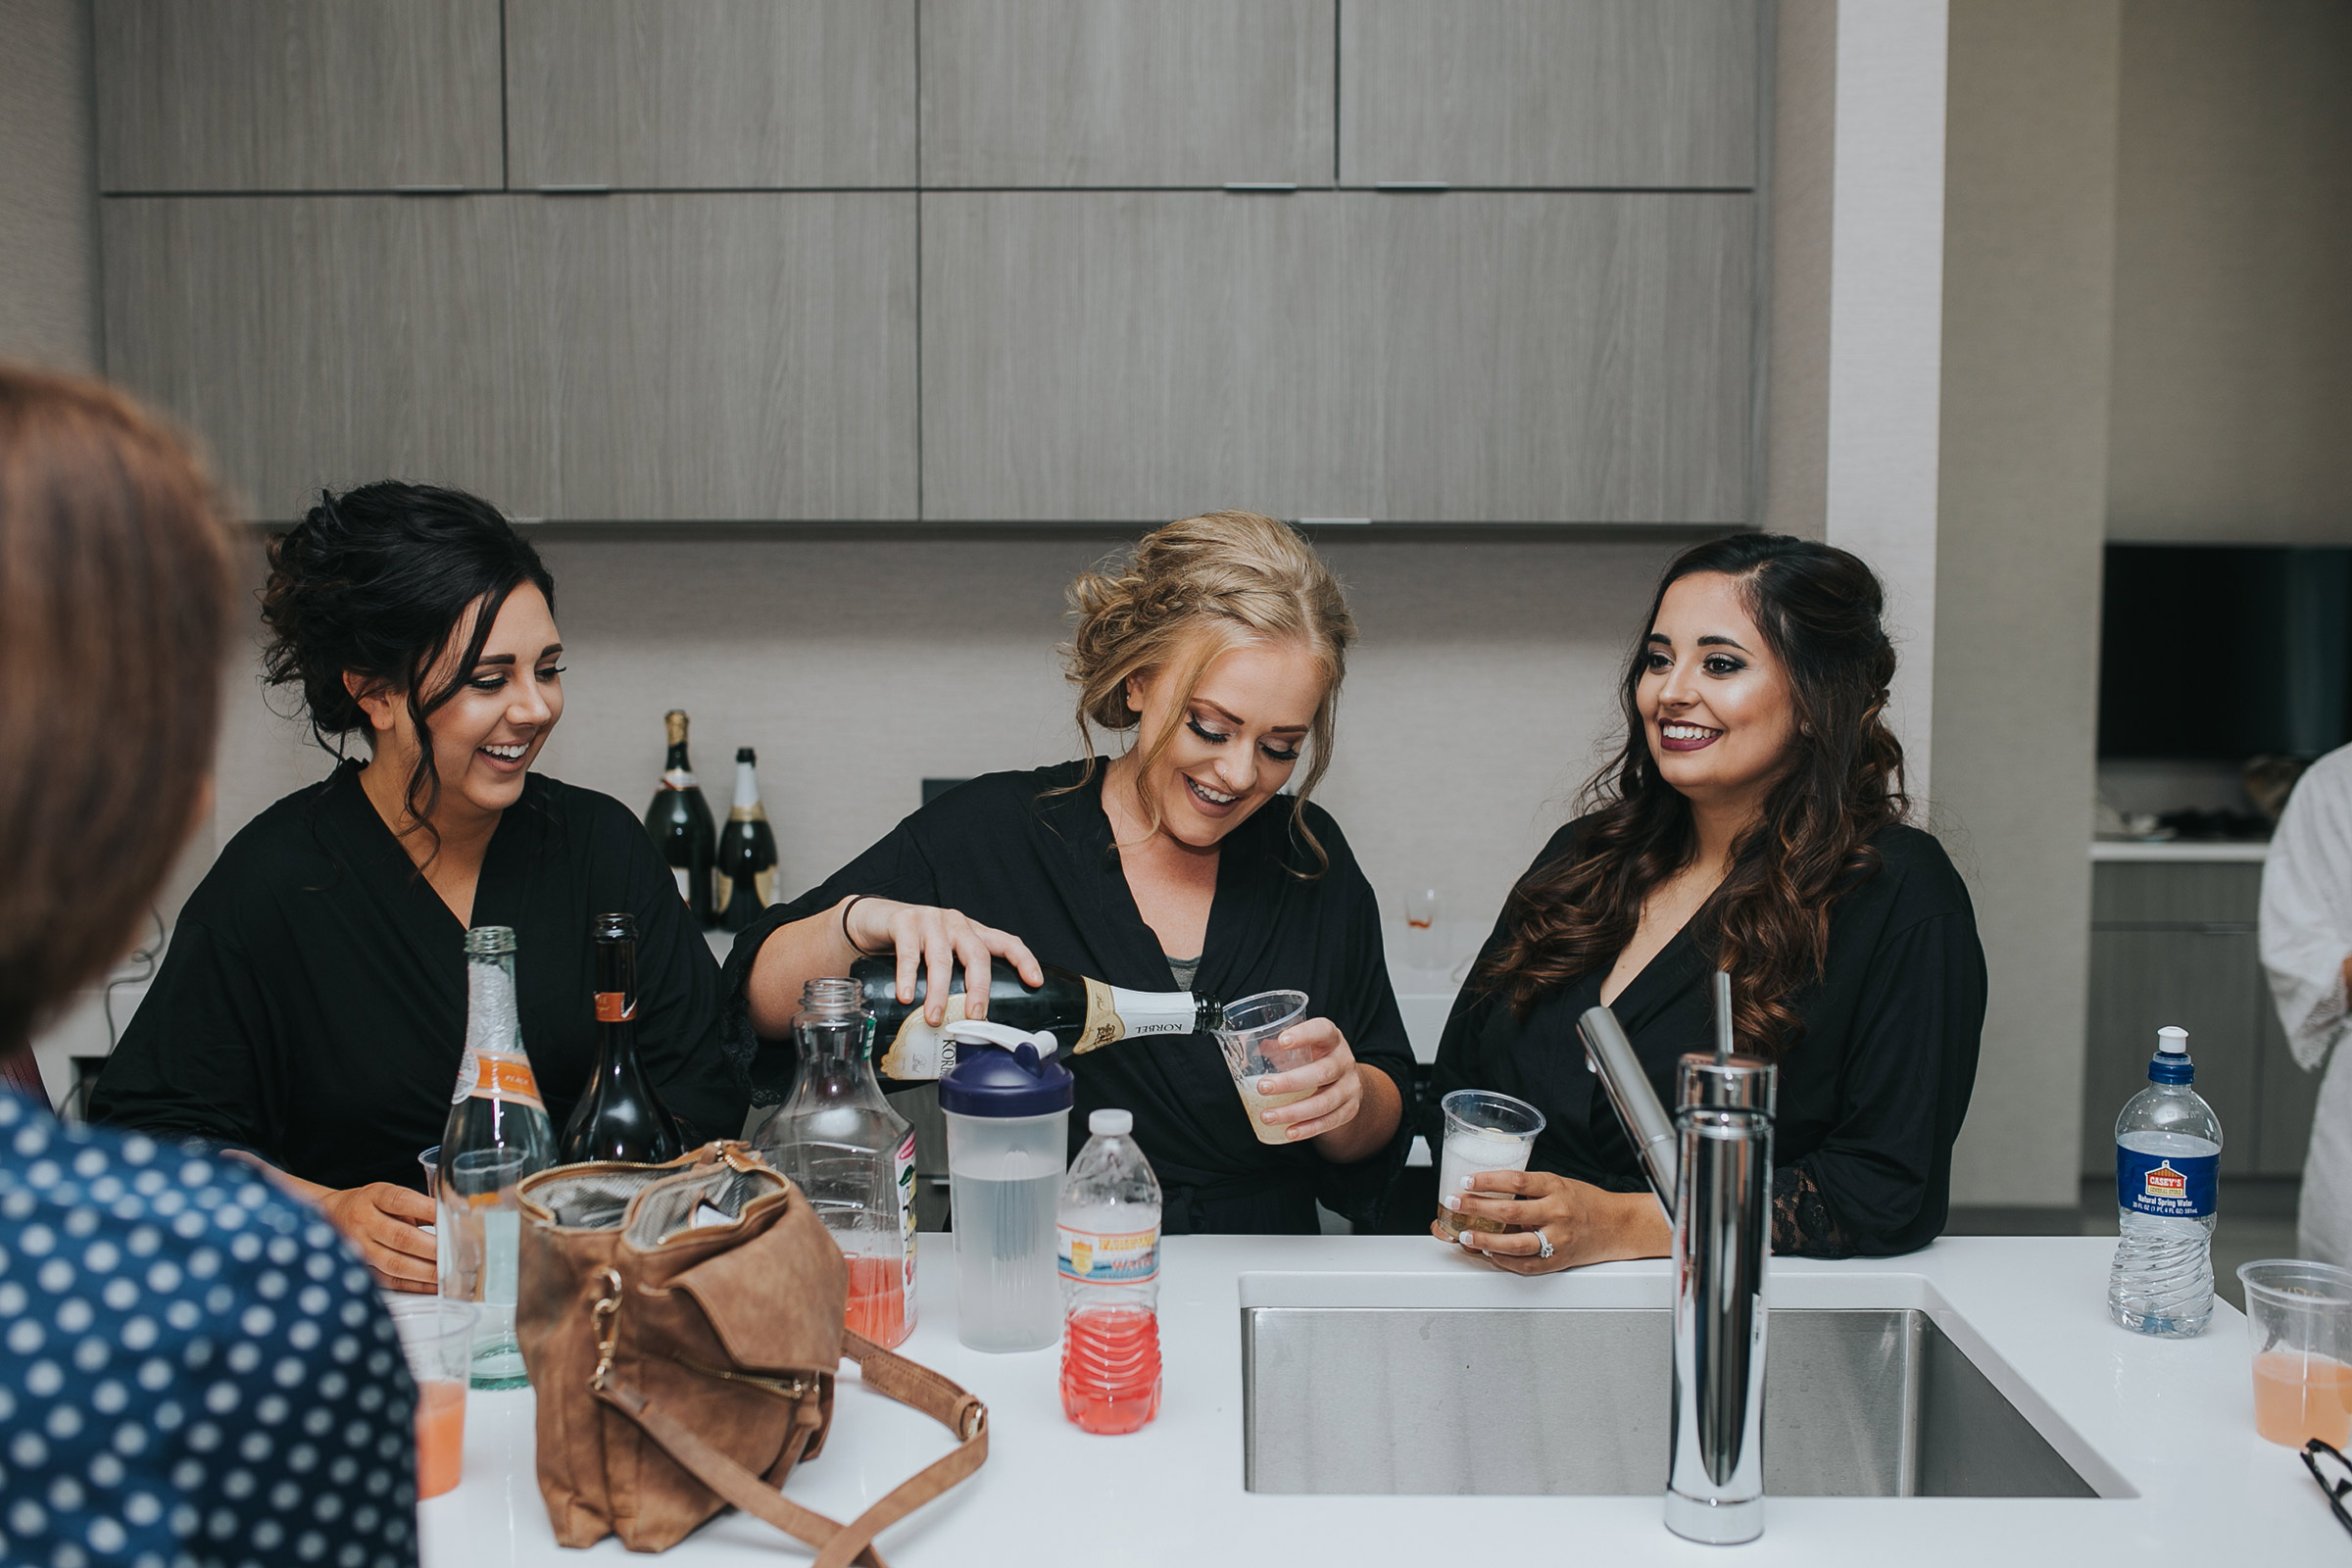 bridesmaids-pouring-drinks-desmoines-iowa-ac-hotel-raelyn-ramey-photography.jpg